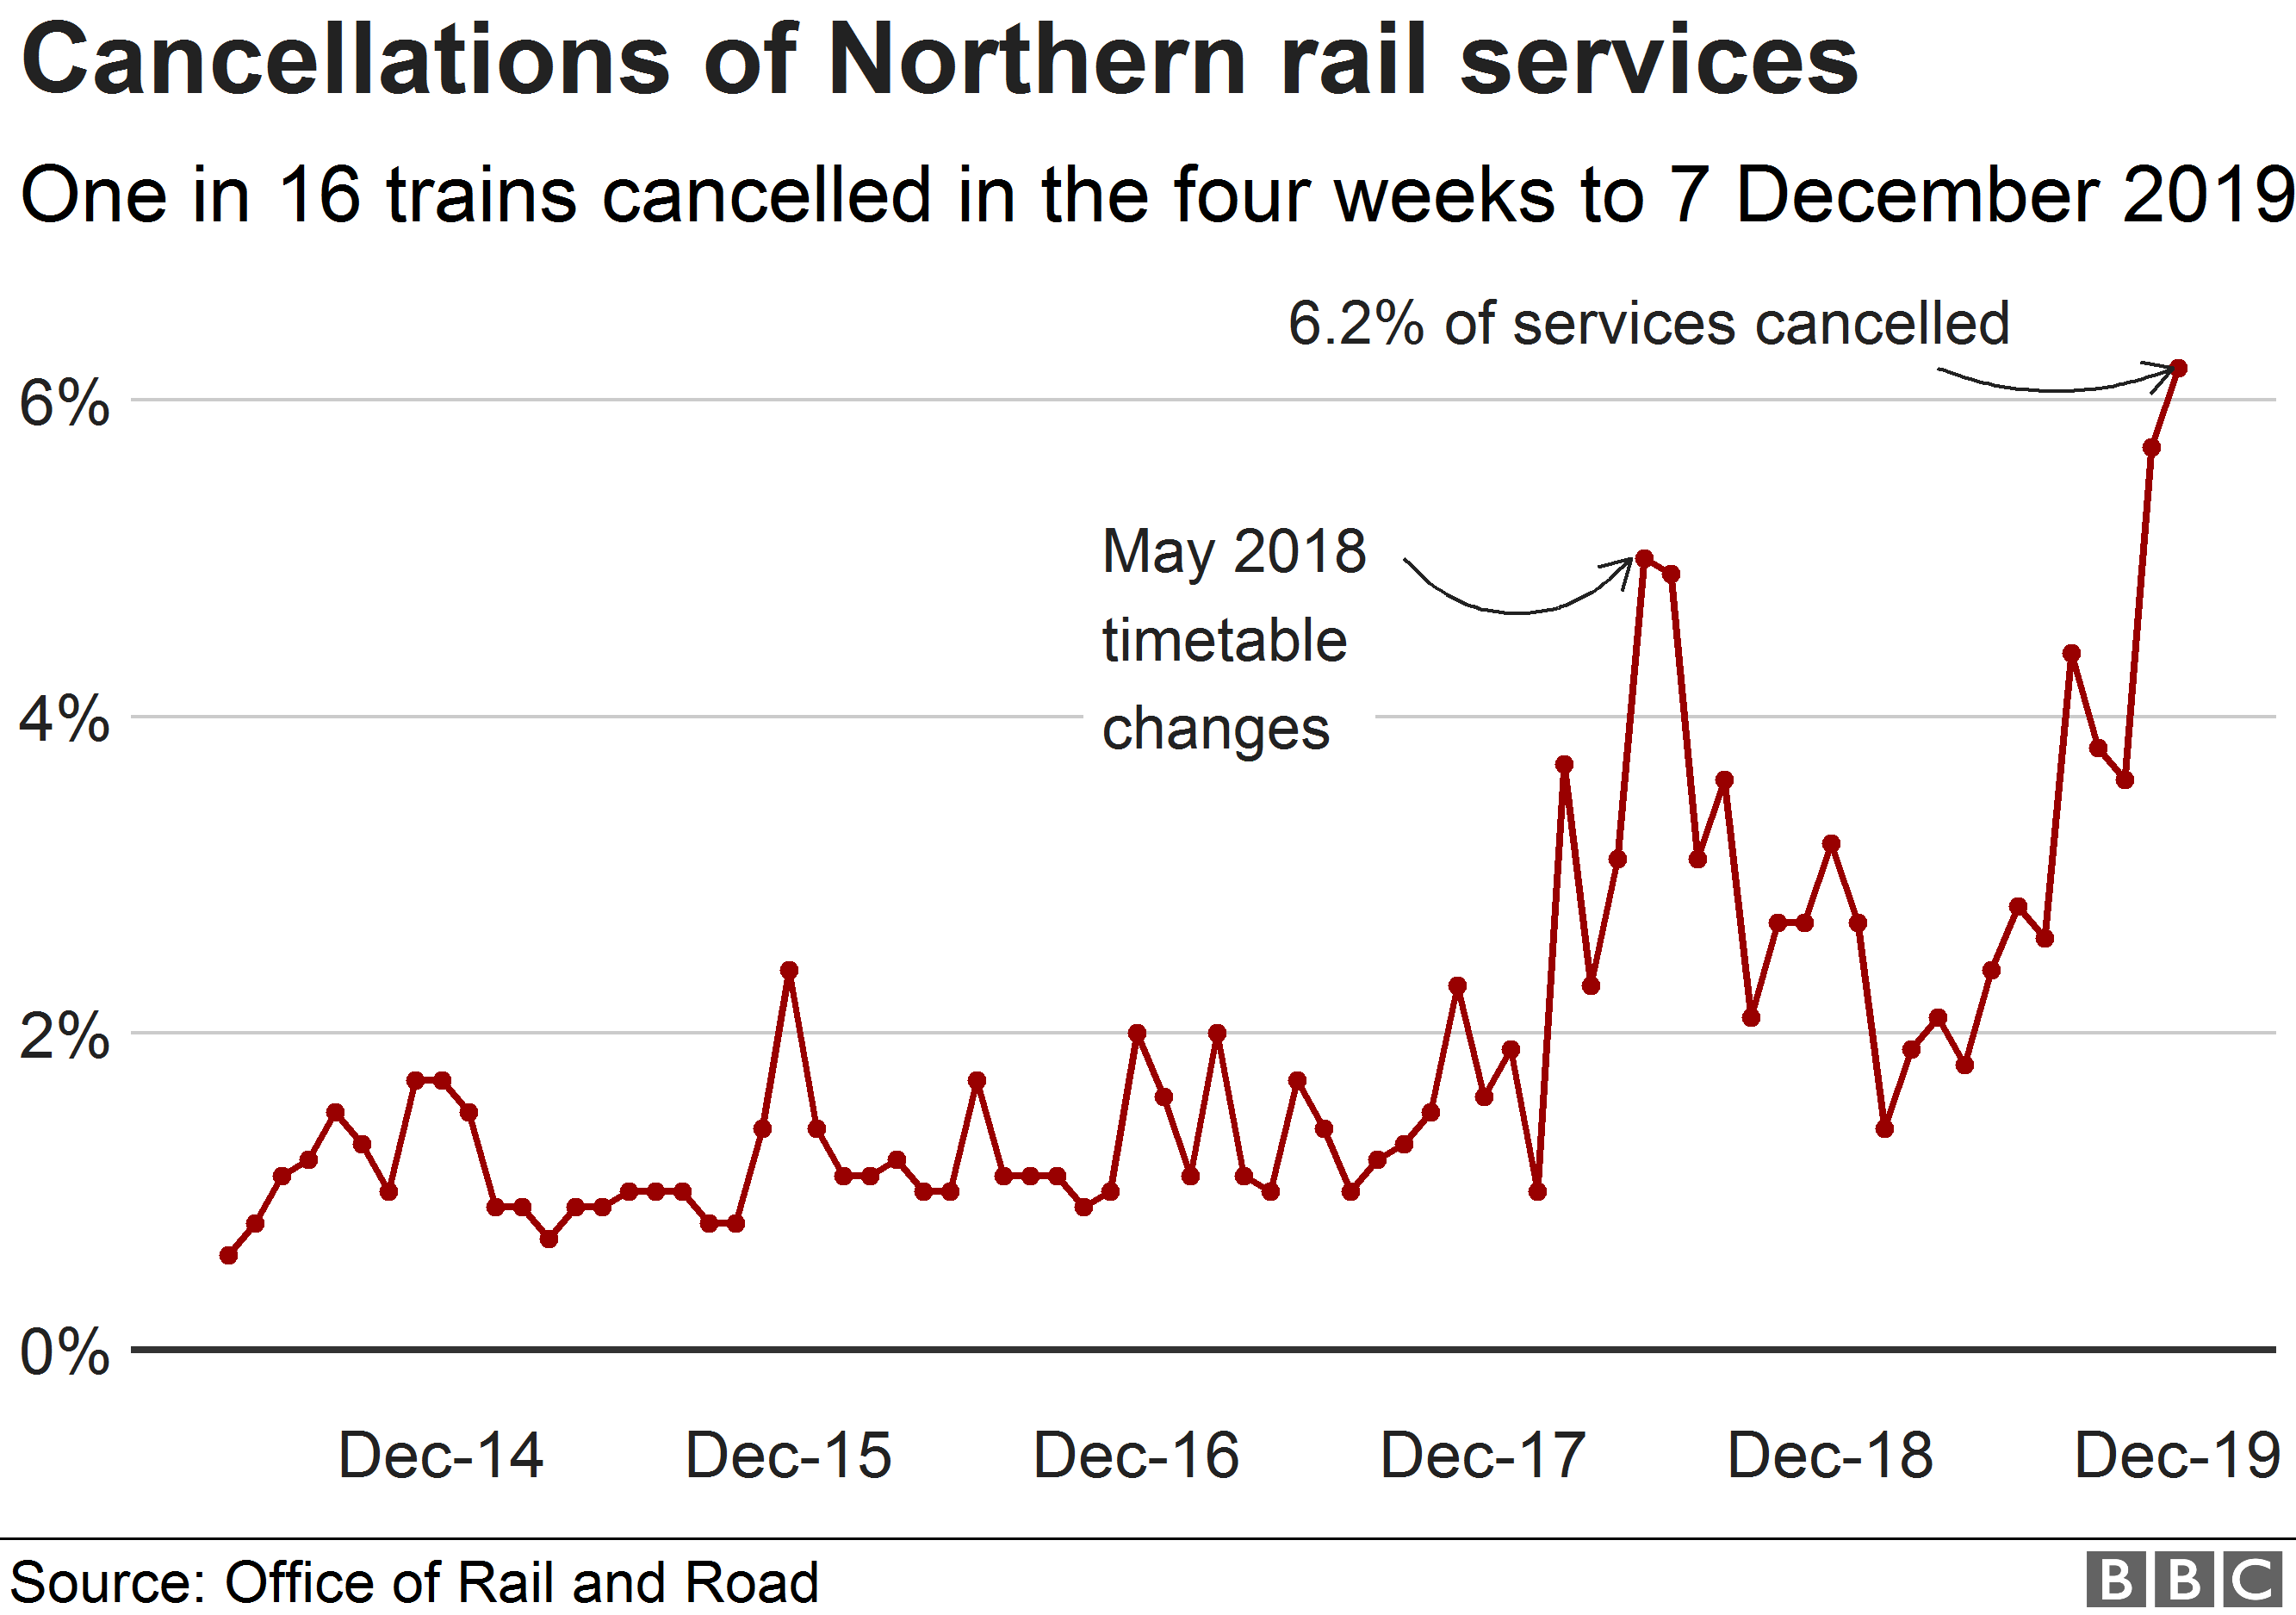 Chart showing the proportion of Northern train services that are cancelled each month